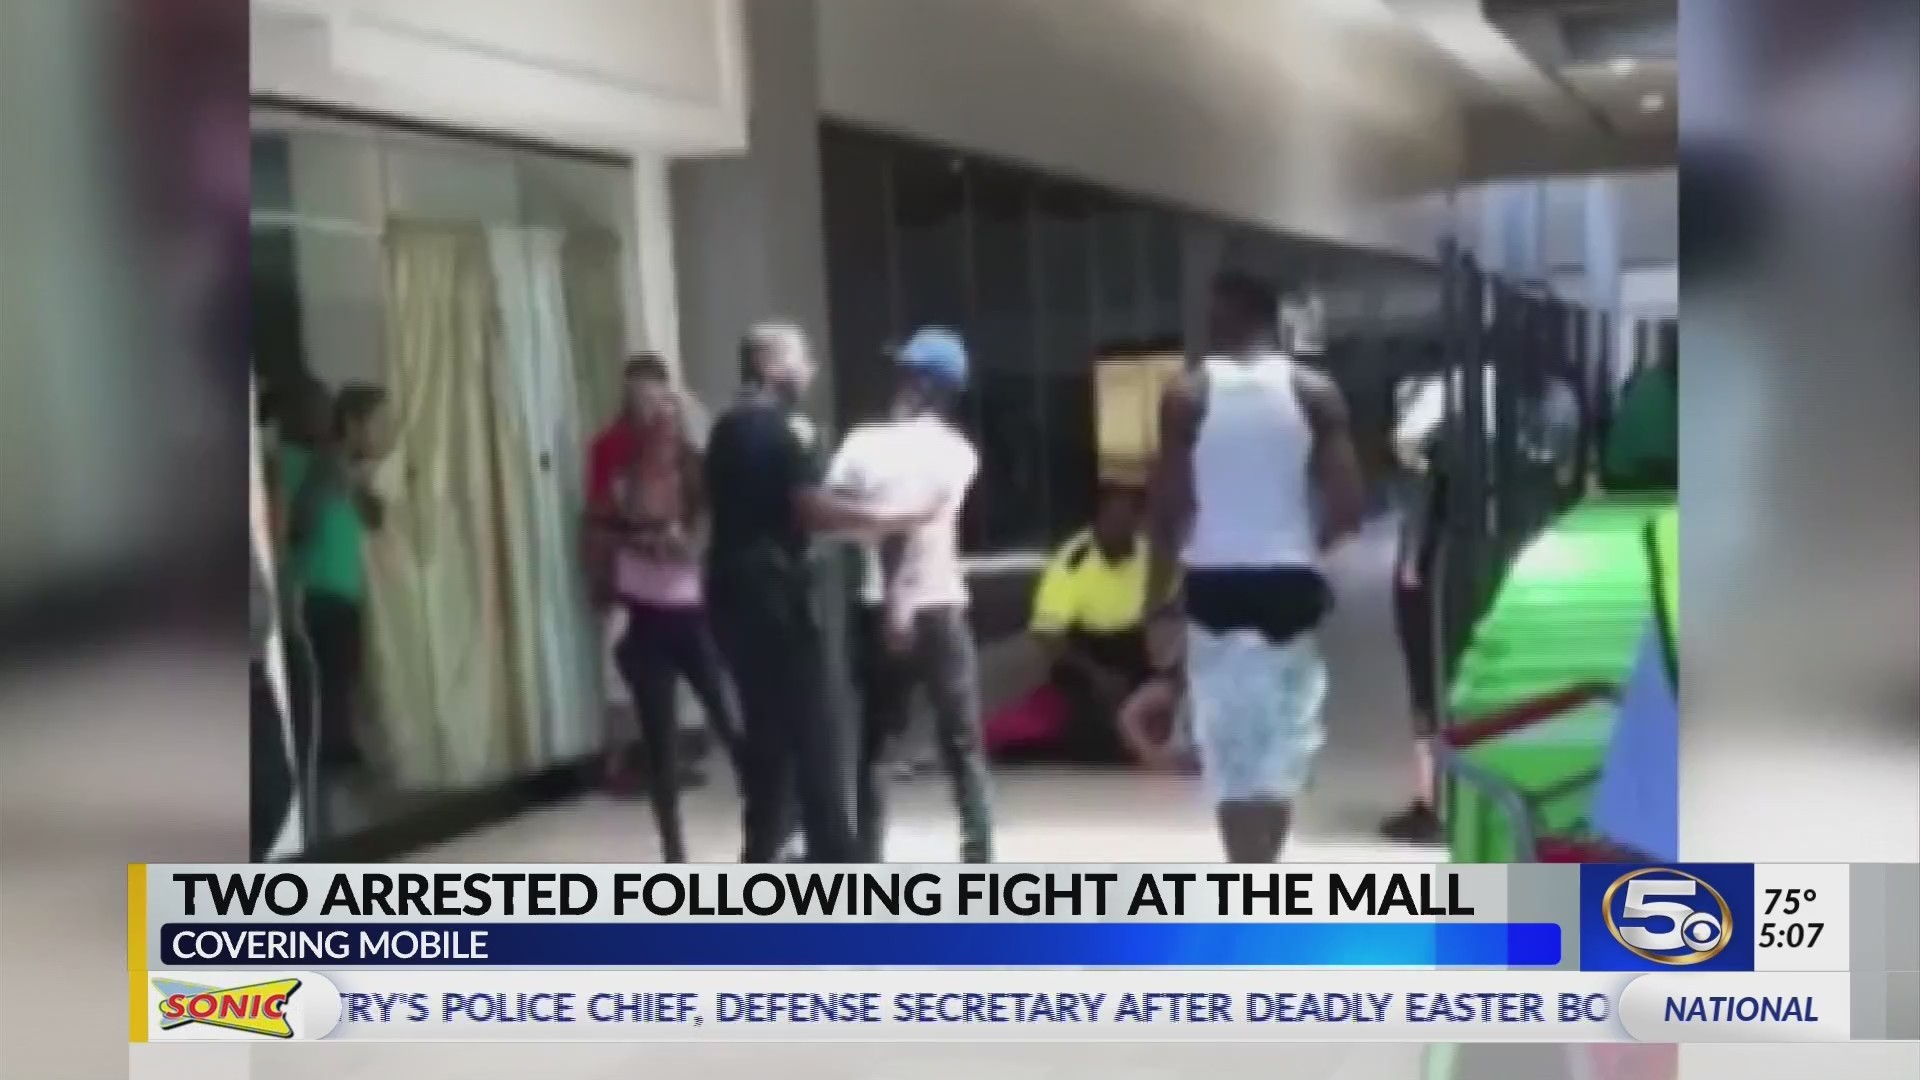 VIDEO: 2 arrested in mall fight caught on camera